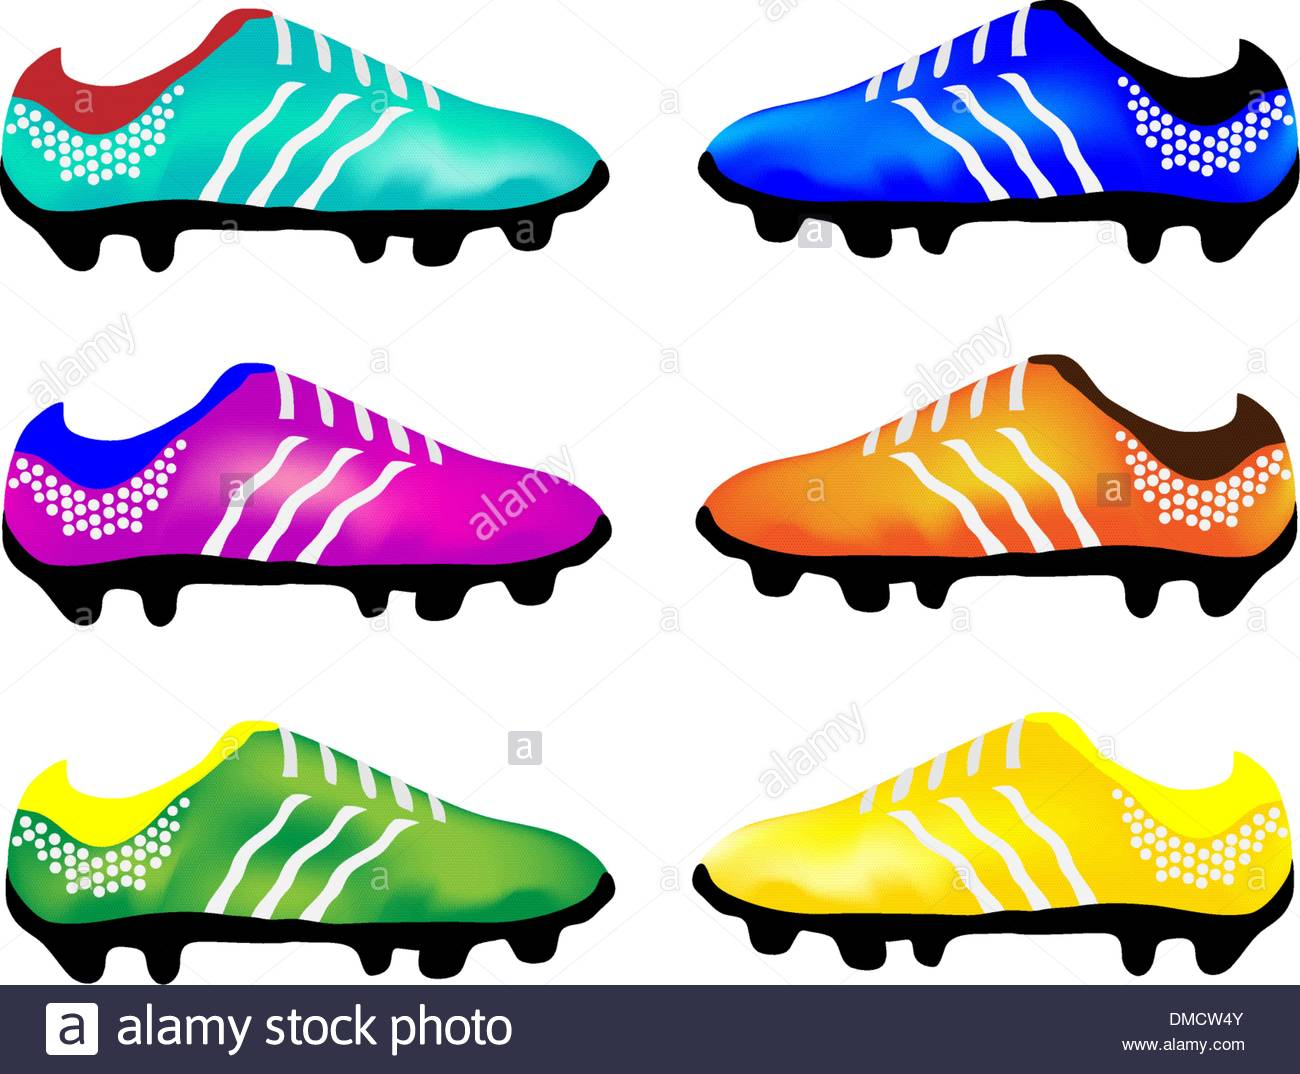 1300x1074 The Multicolor Illustration Of Sport Football Boots Stock Vector